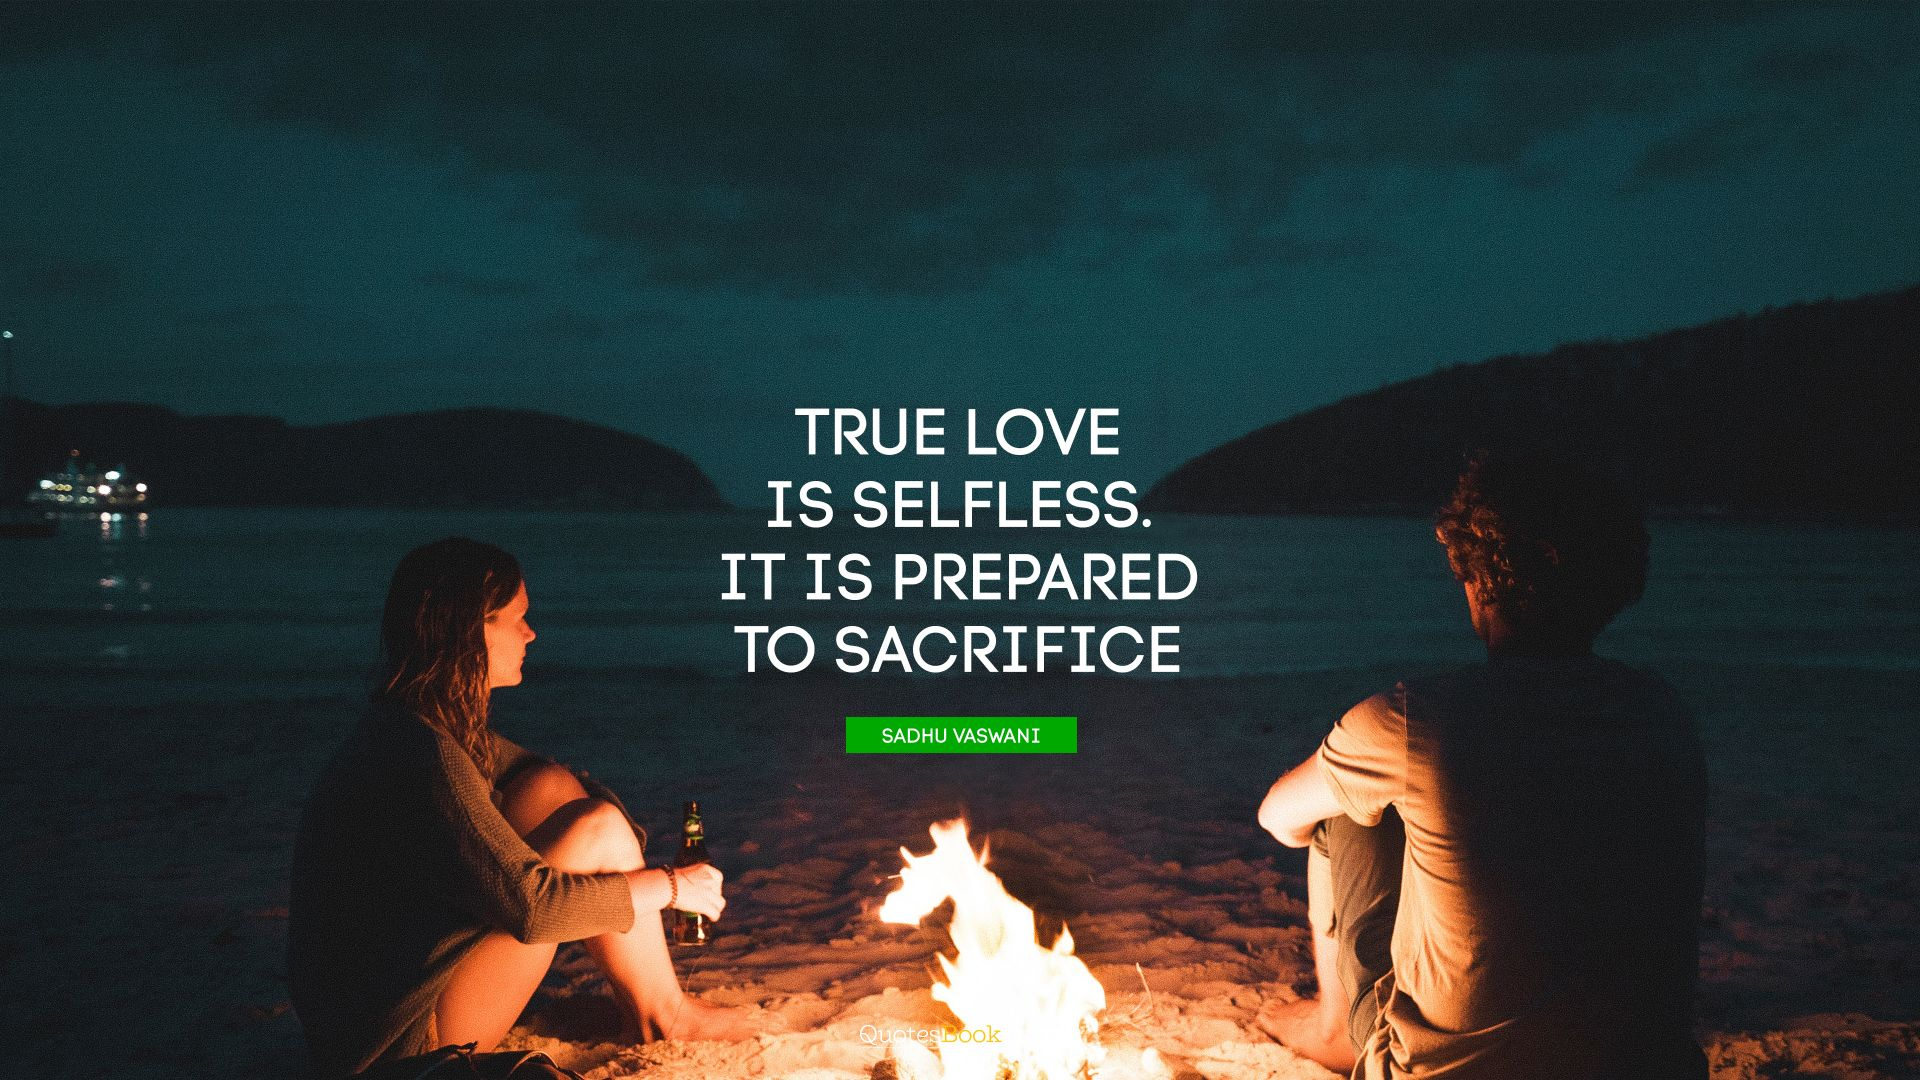 True love is selfless. It is prepared to sacrifice. - Quote by Sadhu Vaswani